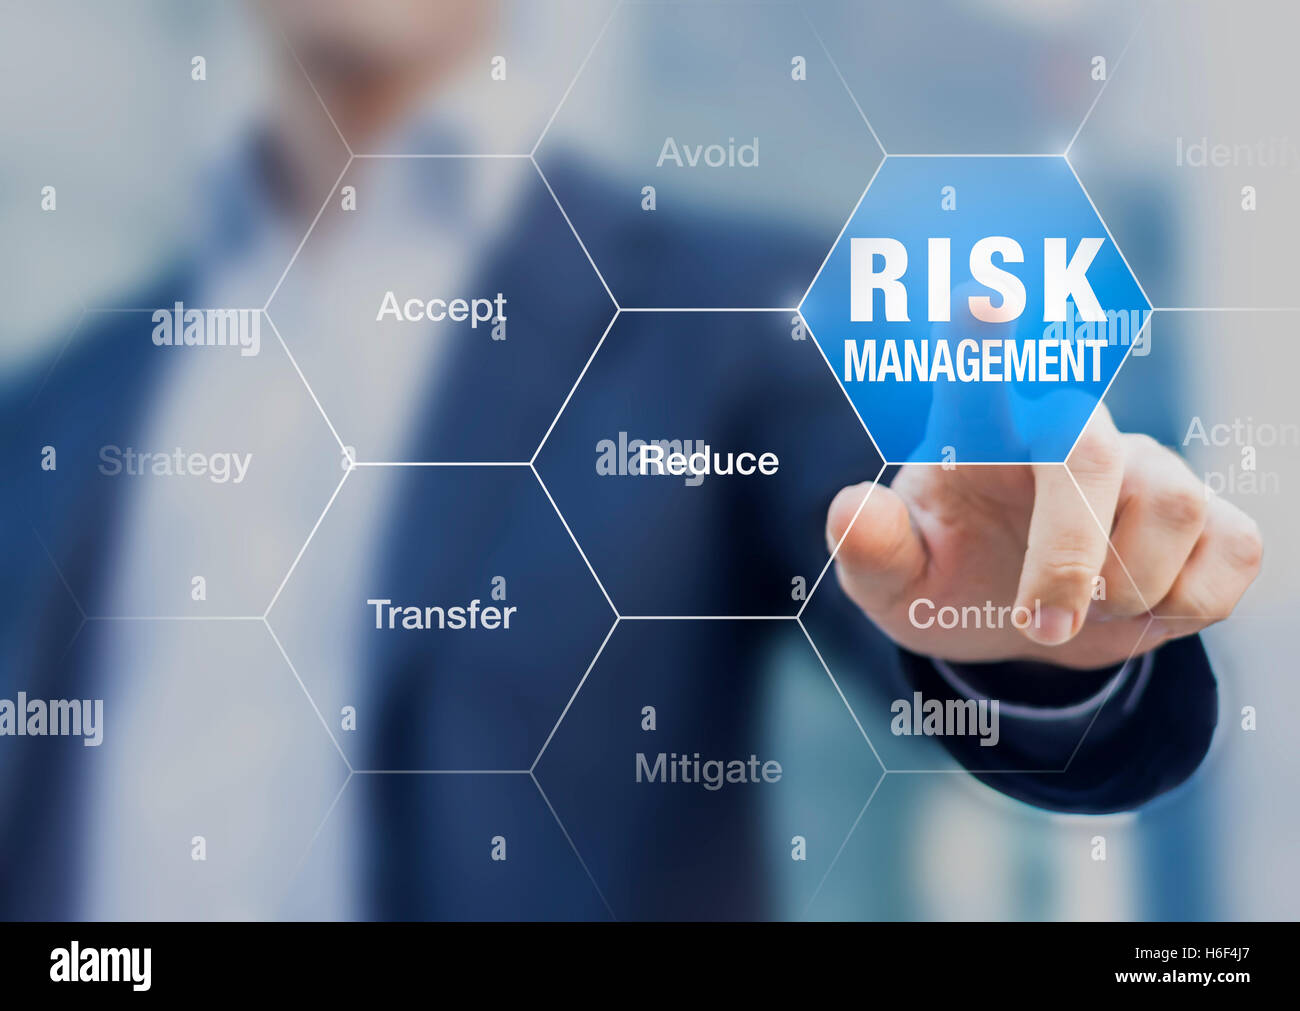 Businessman pointing at risk management concept on screen - Stock Image